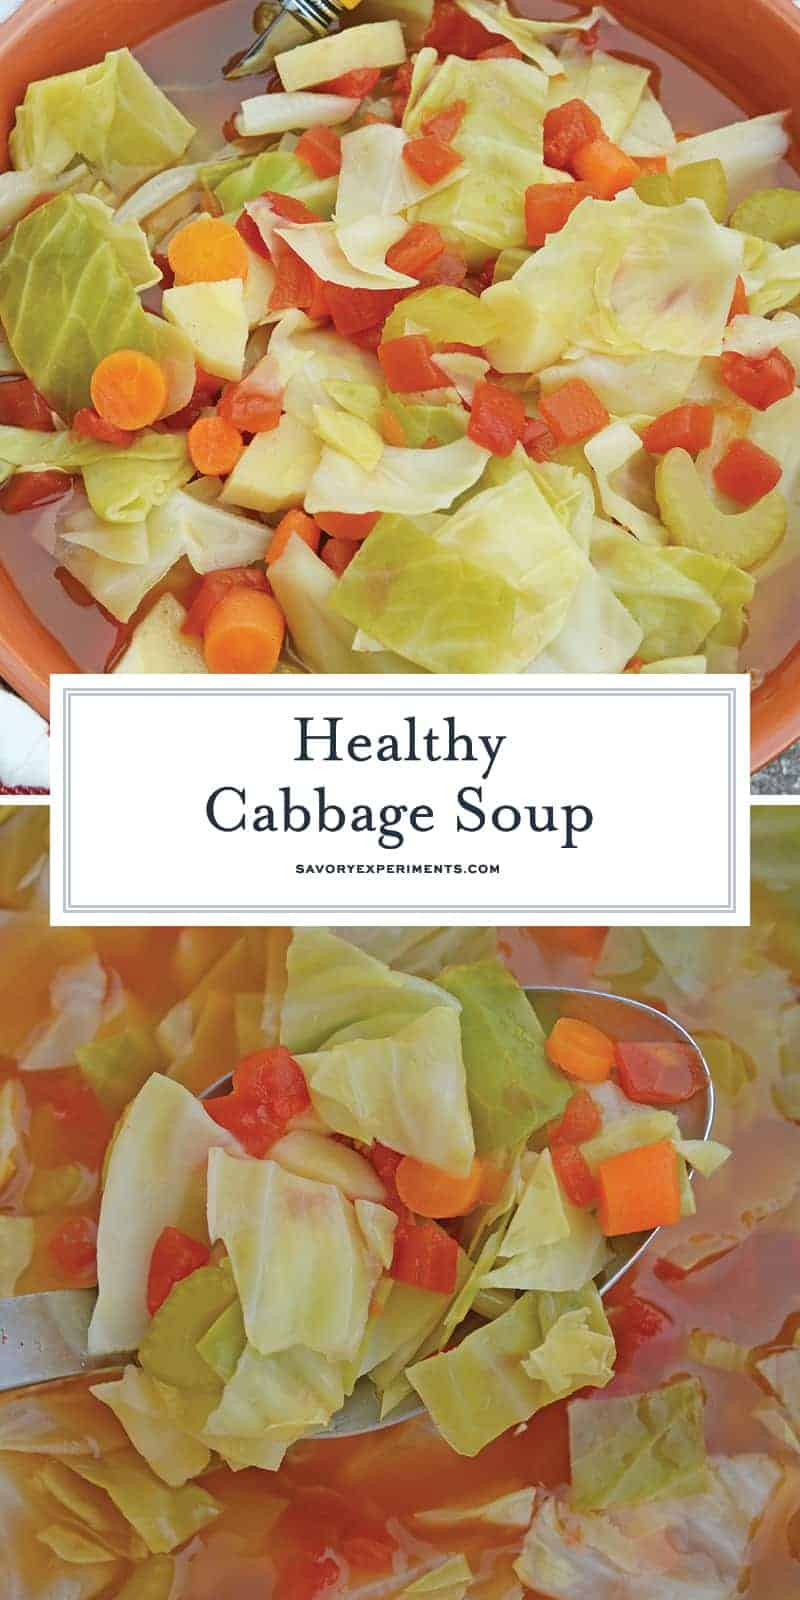 This healthy cabbage soup is a flavorful version of the weightloss wonder soup and can be used for the cabbage soup diet or as a healthy meal anytime! #cabbagesoupdiet #weightlosswondersoup #vegetablesoup www.savoryexperiments.com